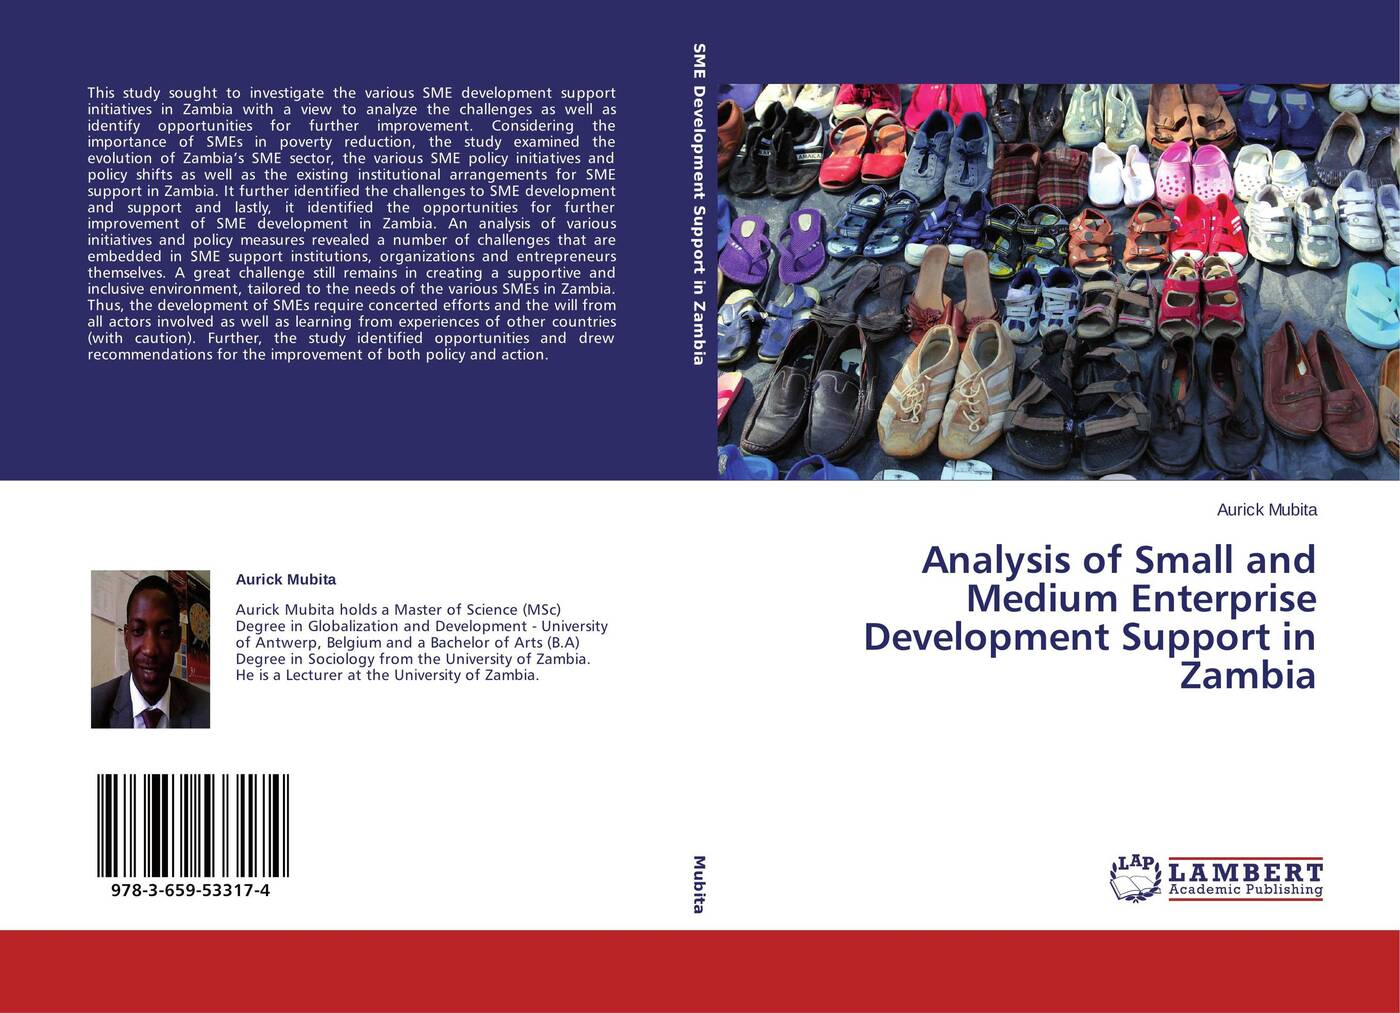 Aurick Mubita Analysis of Small and Medium Enterprise Development Support in Zambia stephen gumboh decentralization policy implementation in zambia